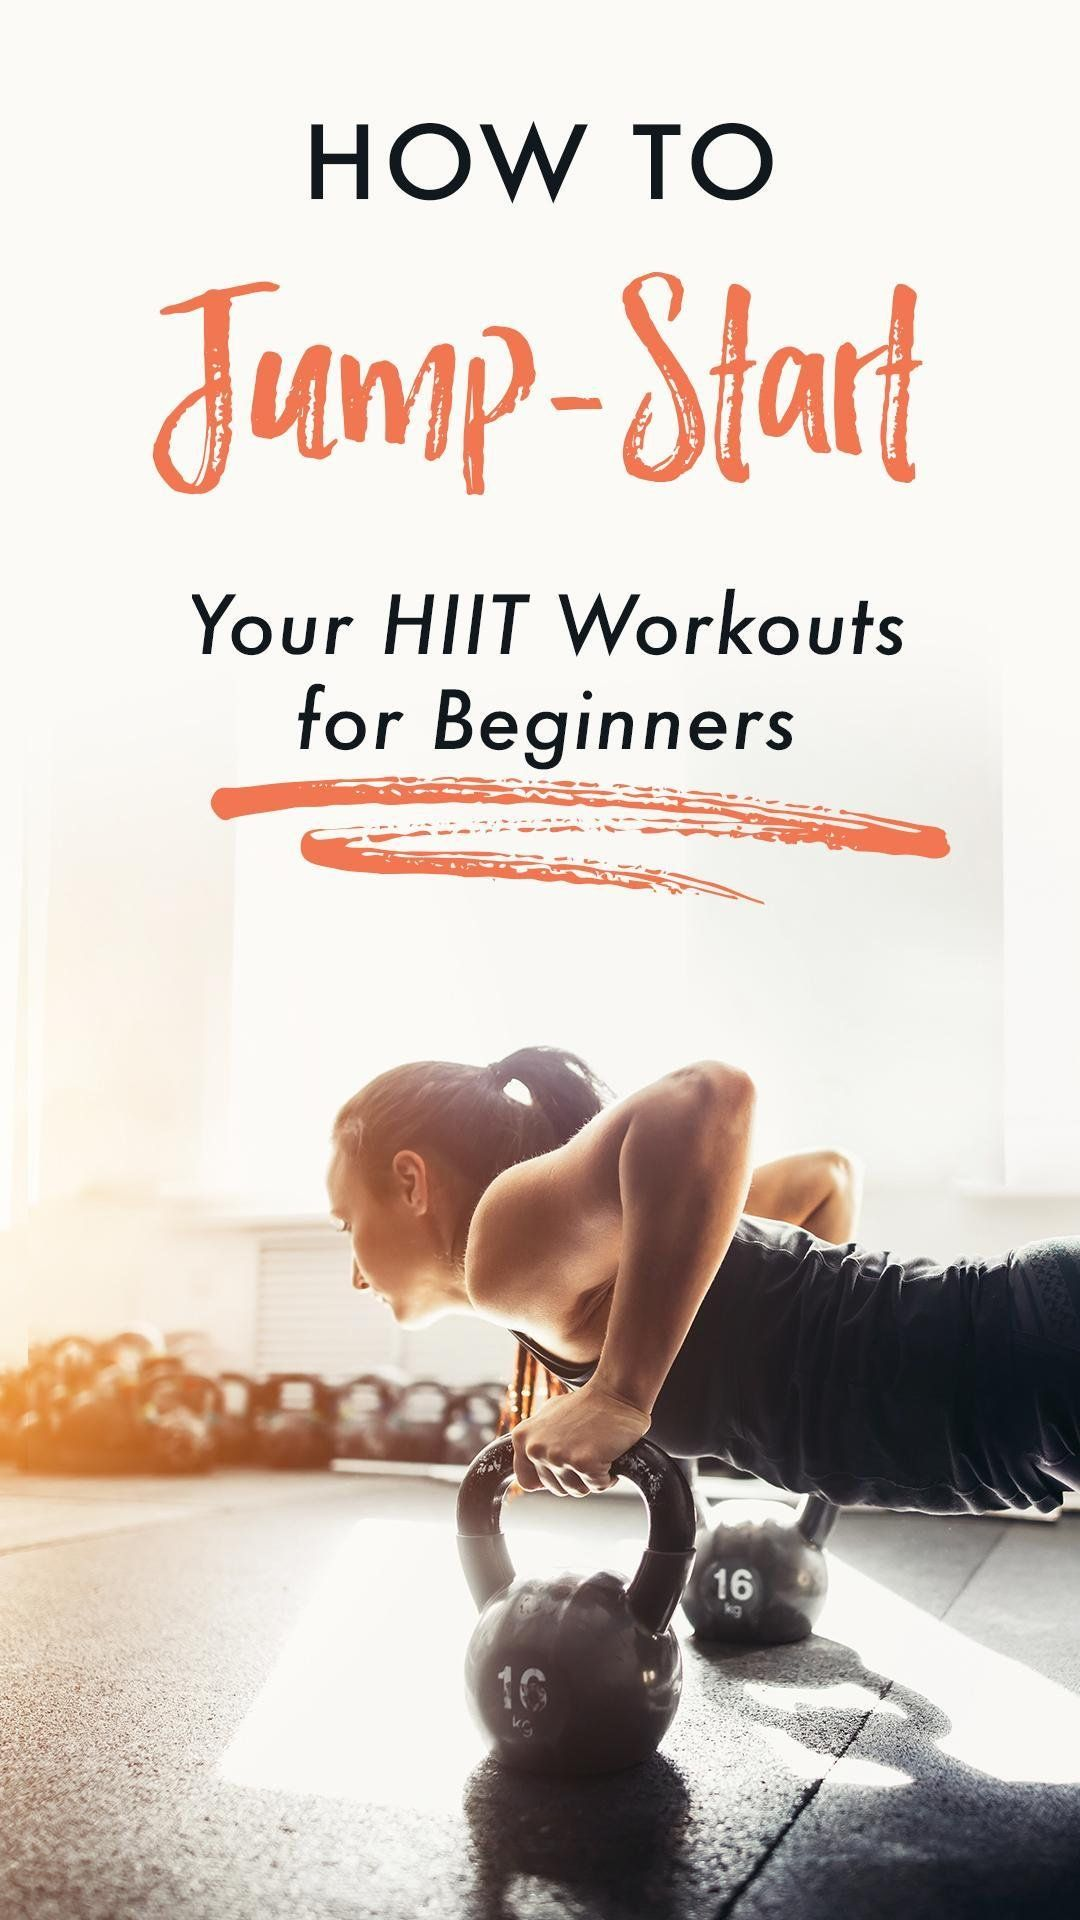 Hiit For Beginners Tips To Jump Start Your Workouts Livestrong Com Hiit For Beginners Hiit Workouts For Beginners Workout For Beginners